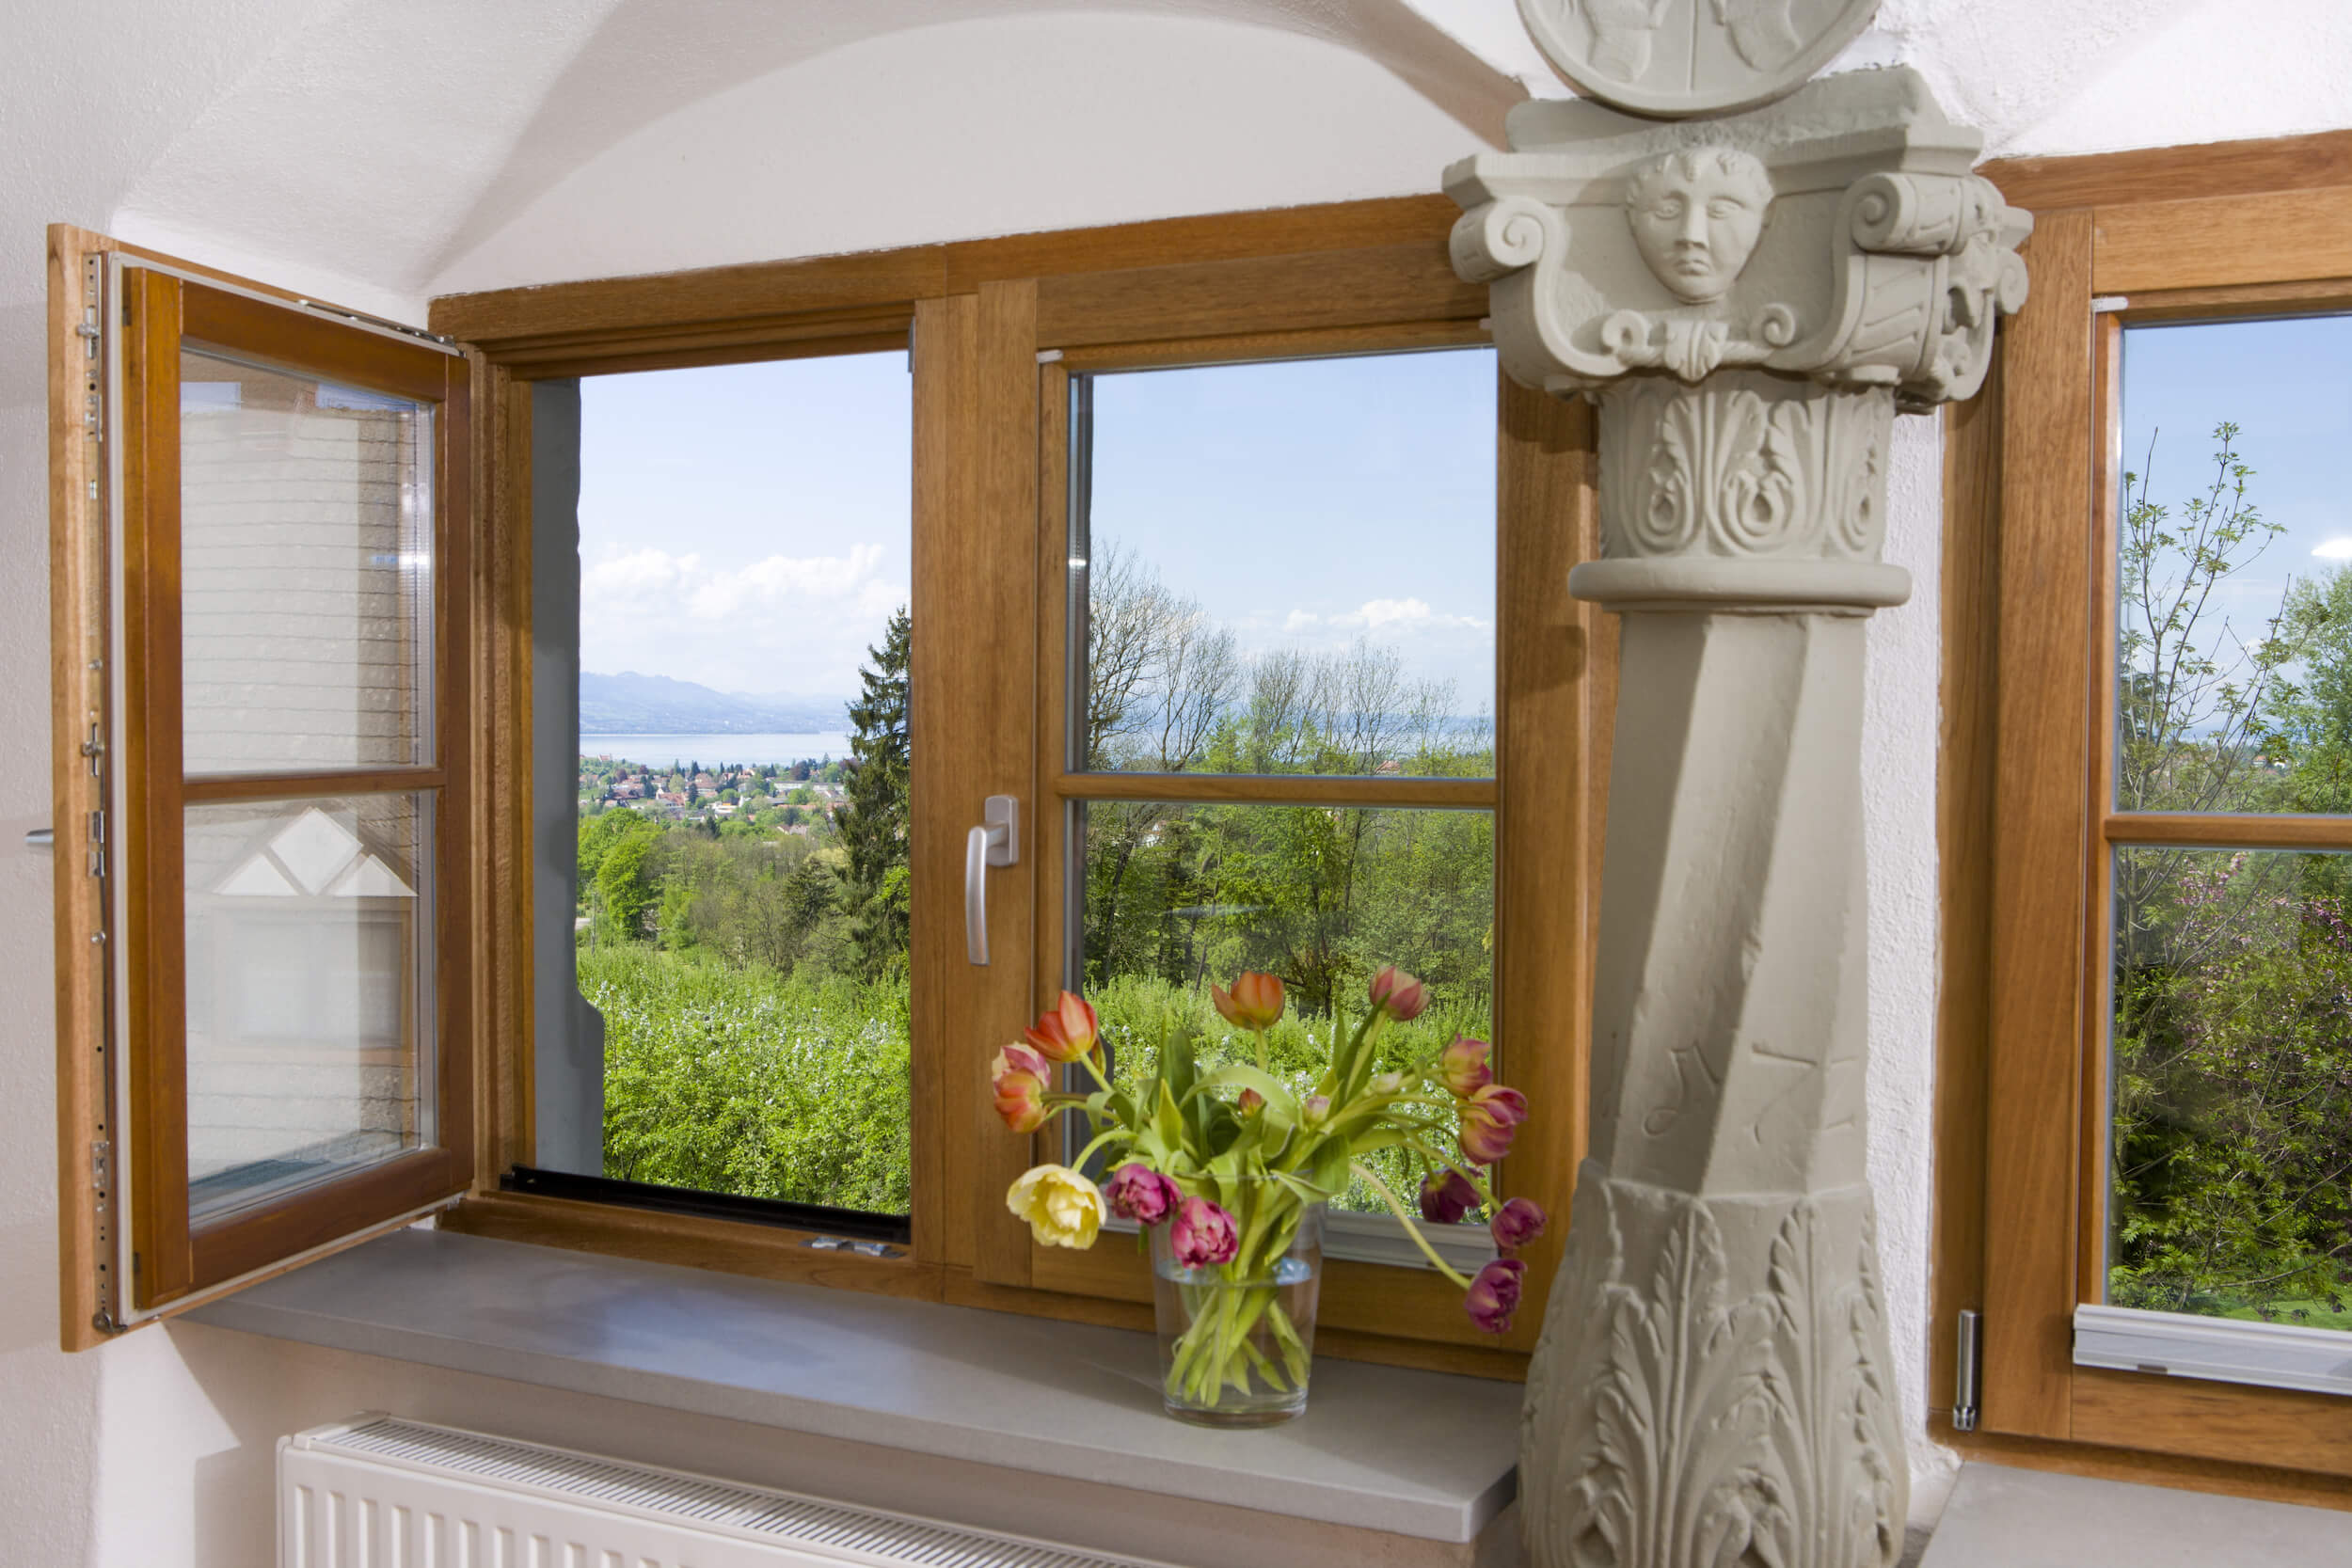 Older wooden windows overlooking a trees | Window Replacement | Window Makeover